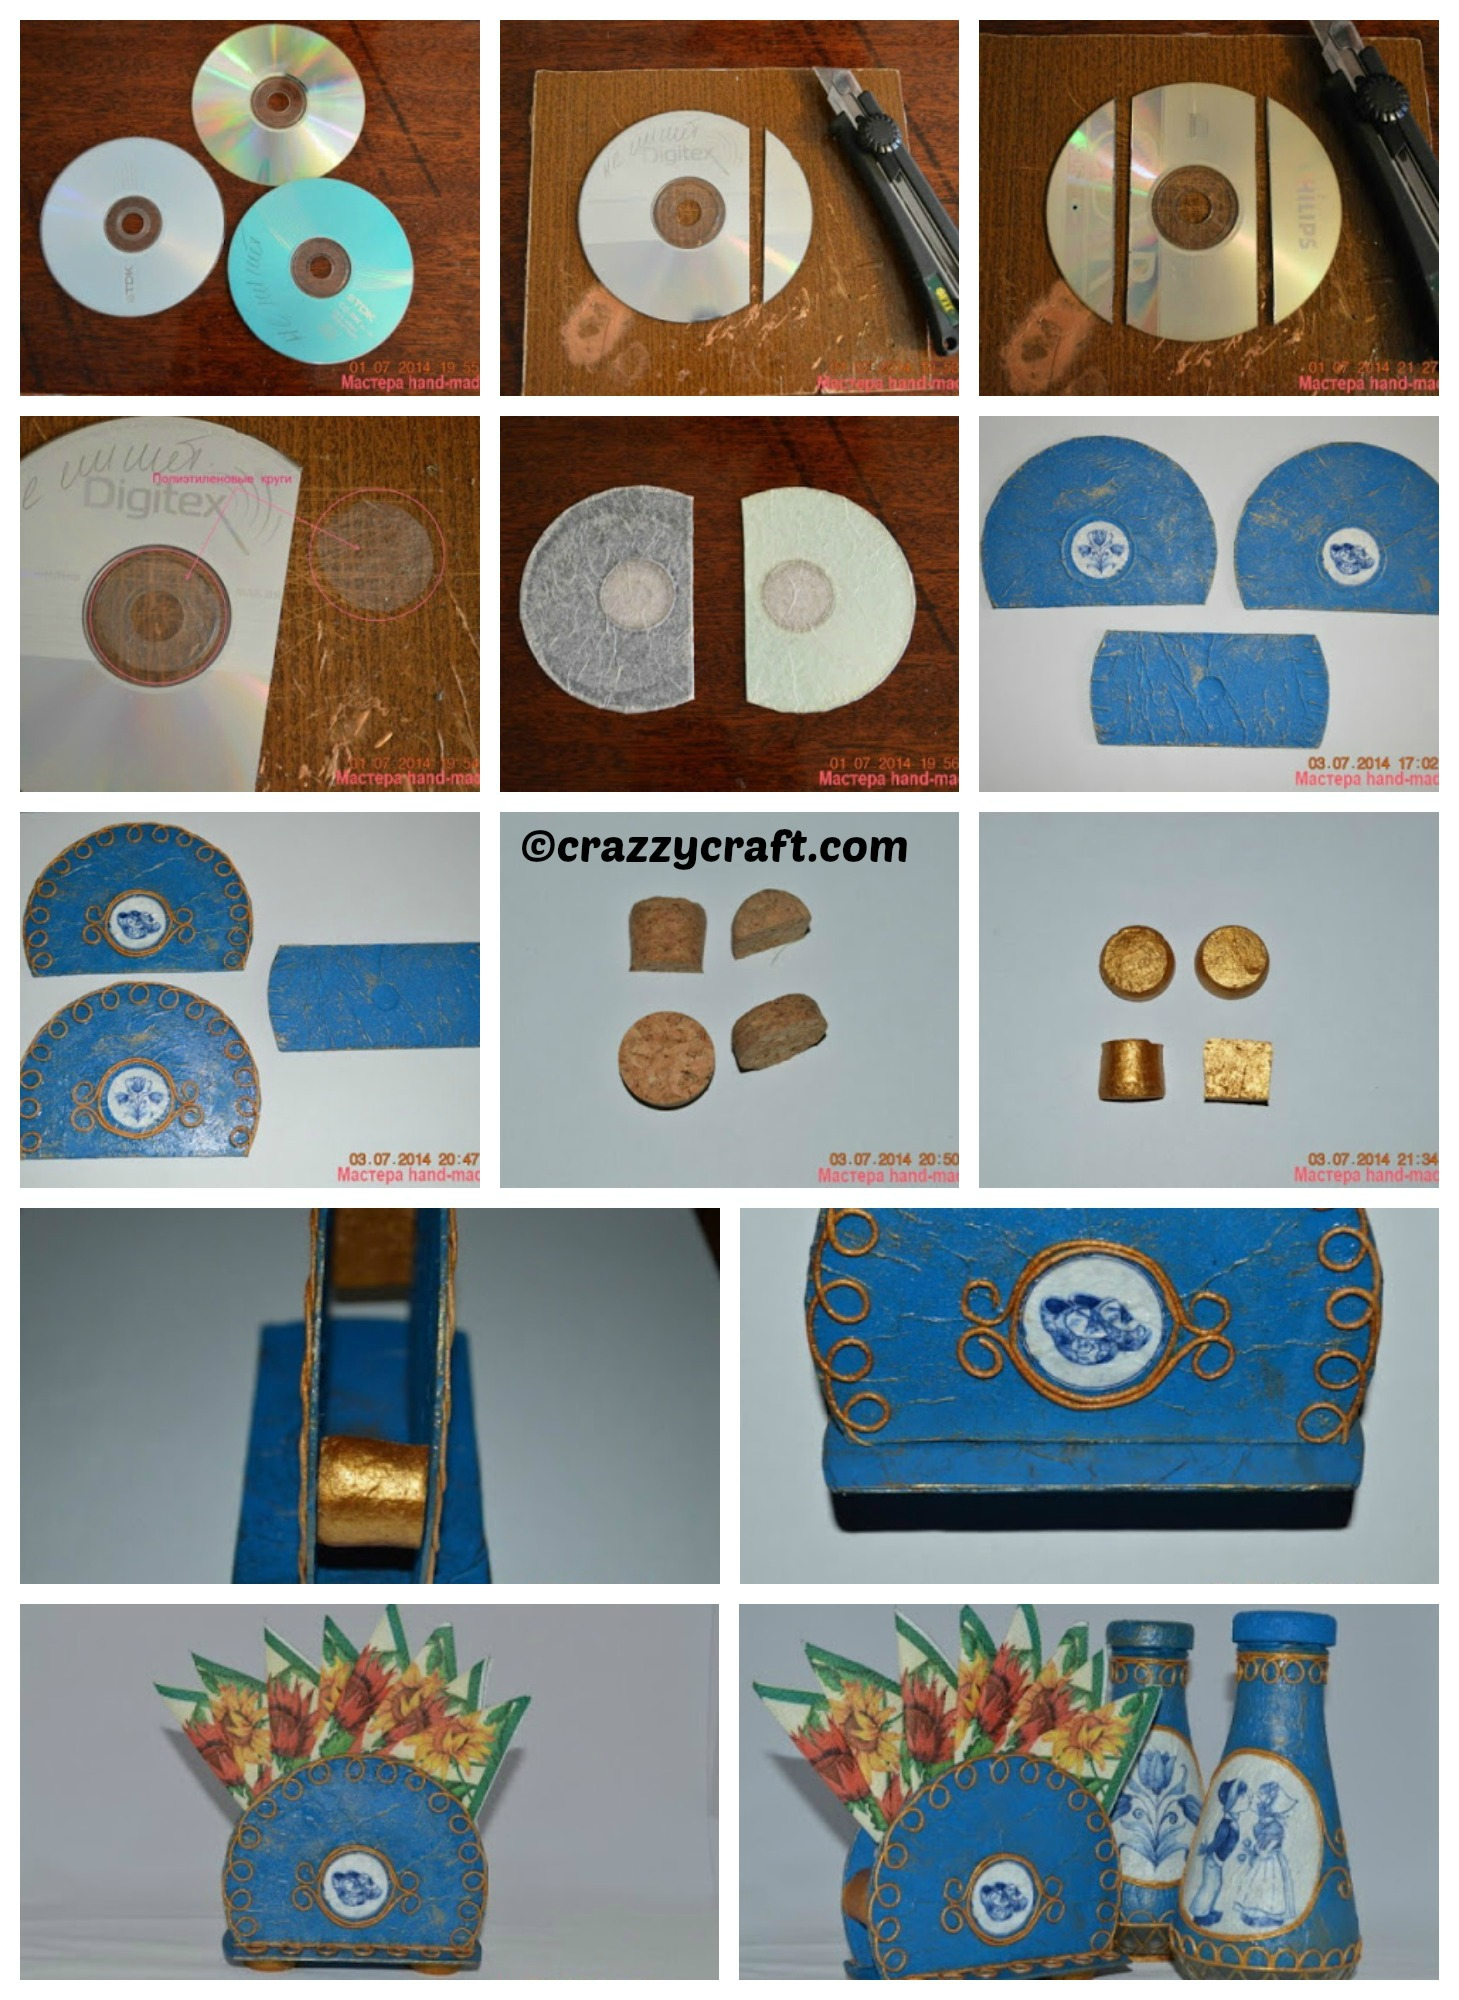 How to make a Tissue Holder from CD